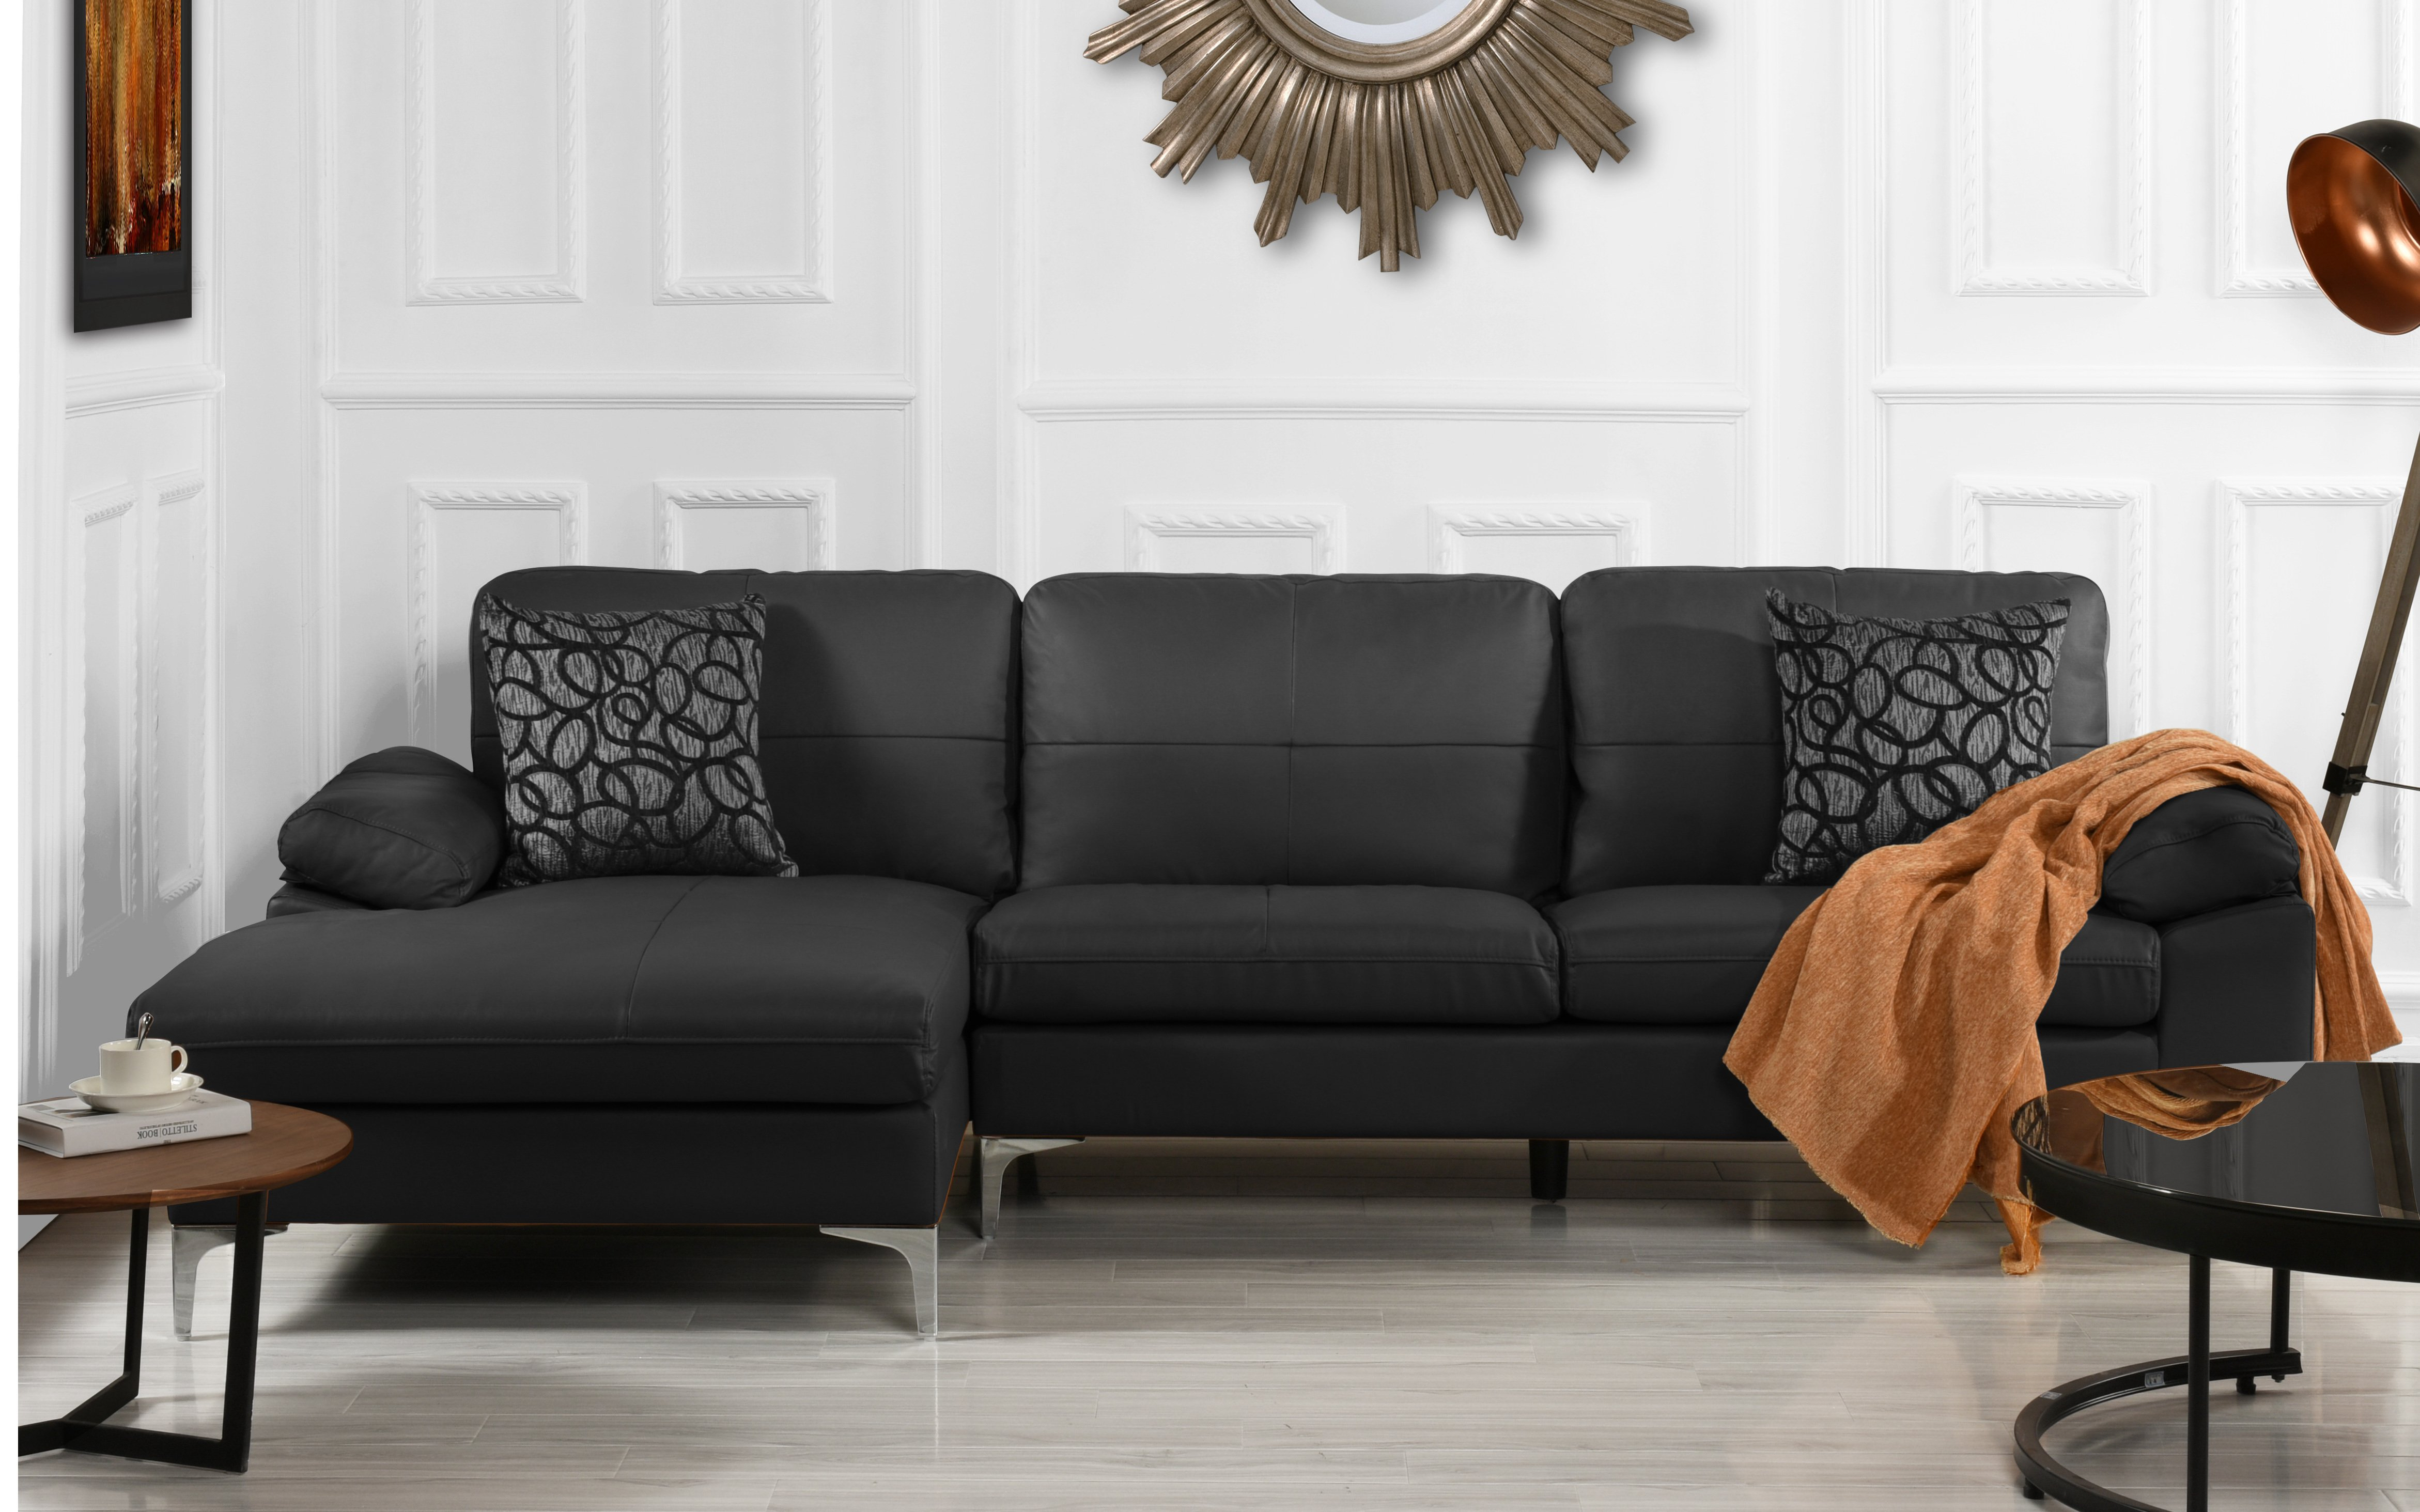 L Sofa Details About Living Room Family Room Leather Sectional Sofa L Shape Couch Left Chaise Black